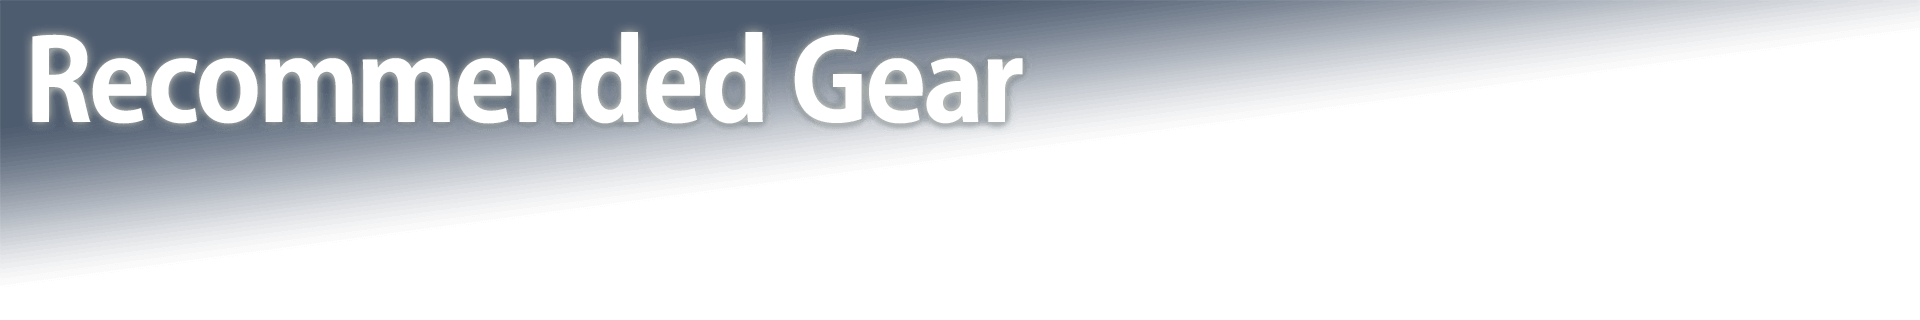 Recommended Gear